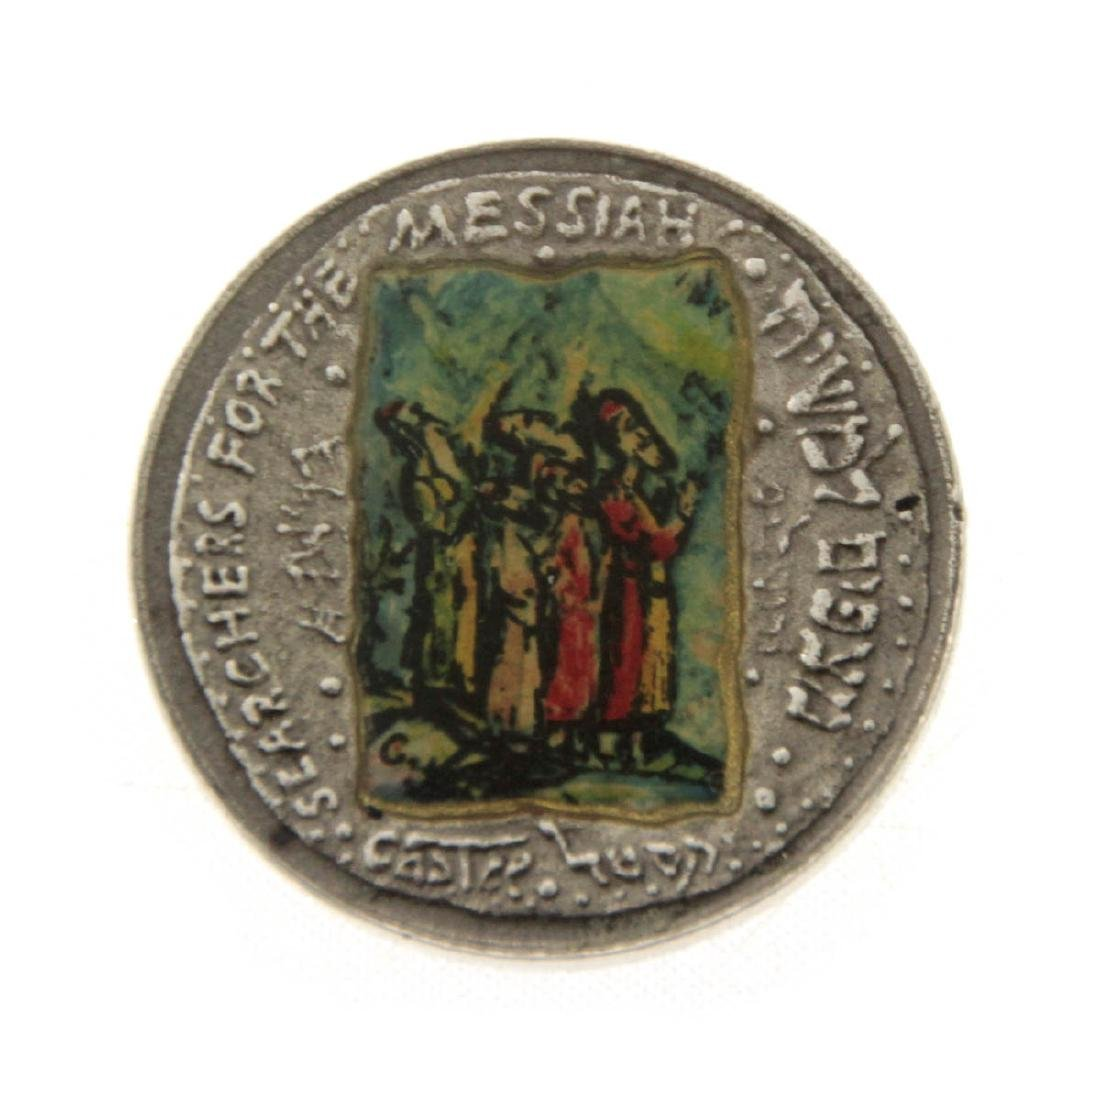 Moshe Castel - Searchers For The Messiah Silver Medal.